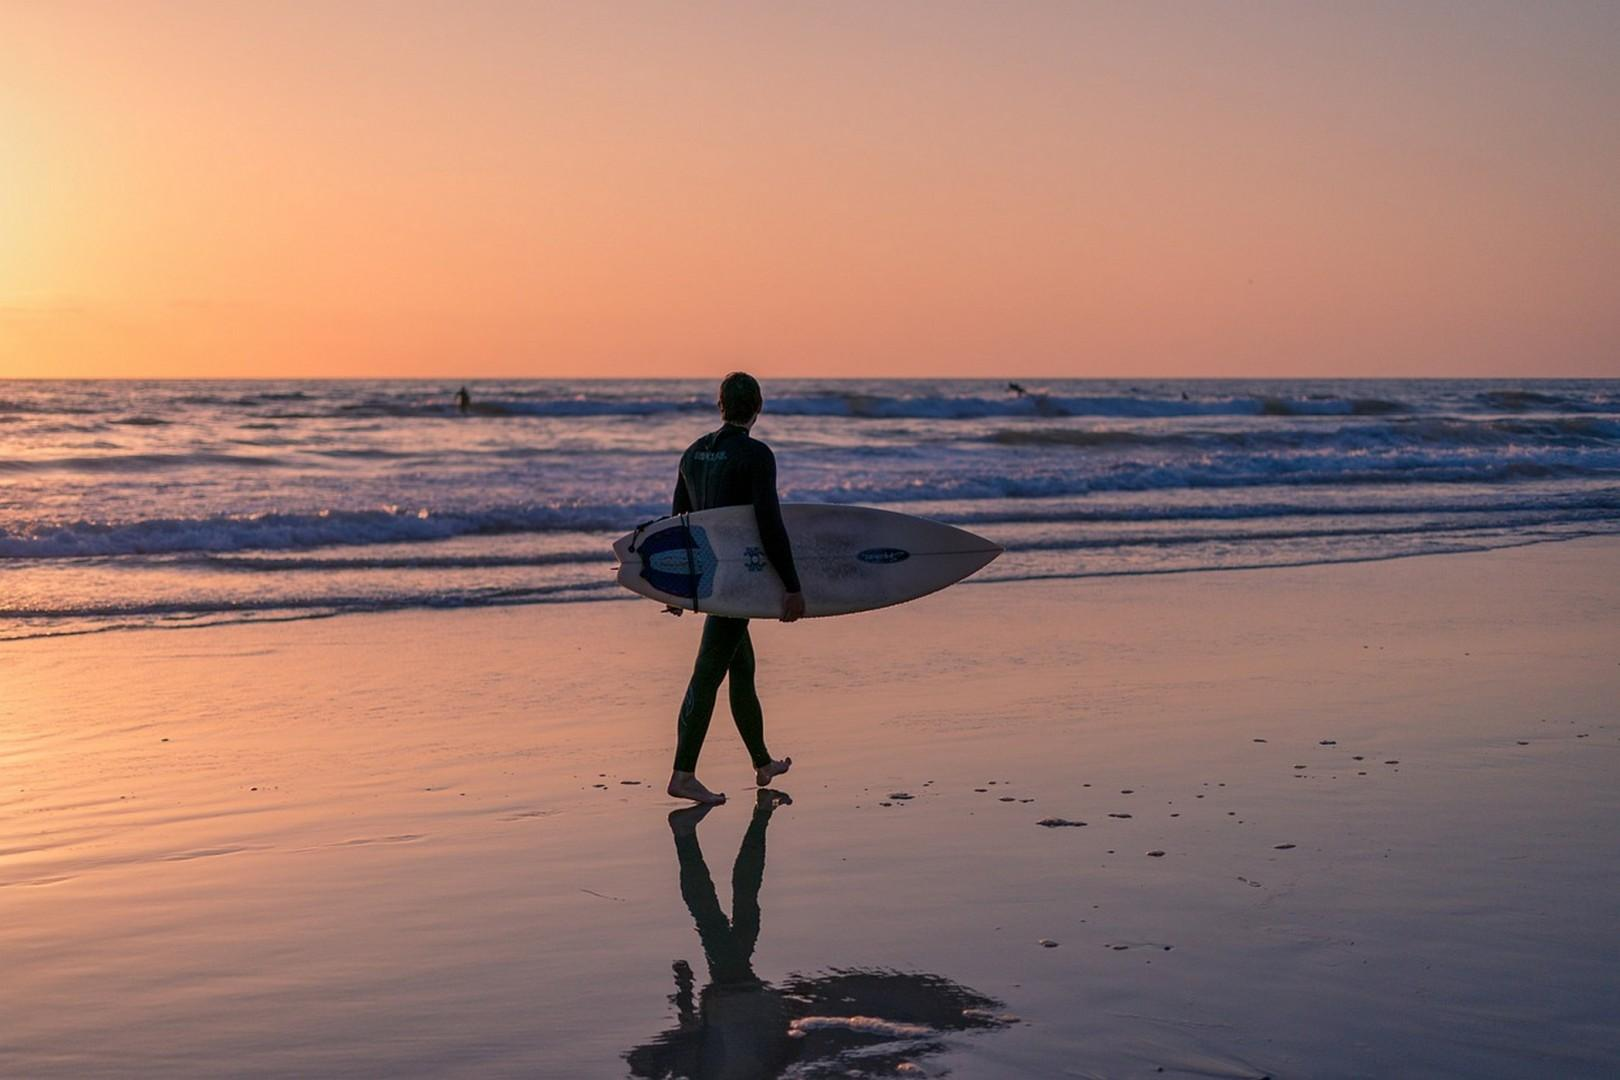 Sunset surf in Mission Beach